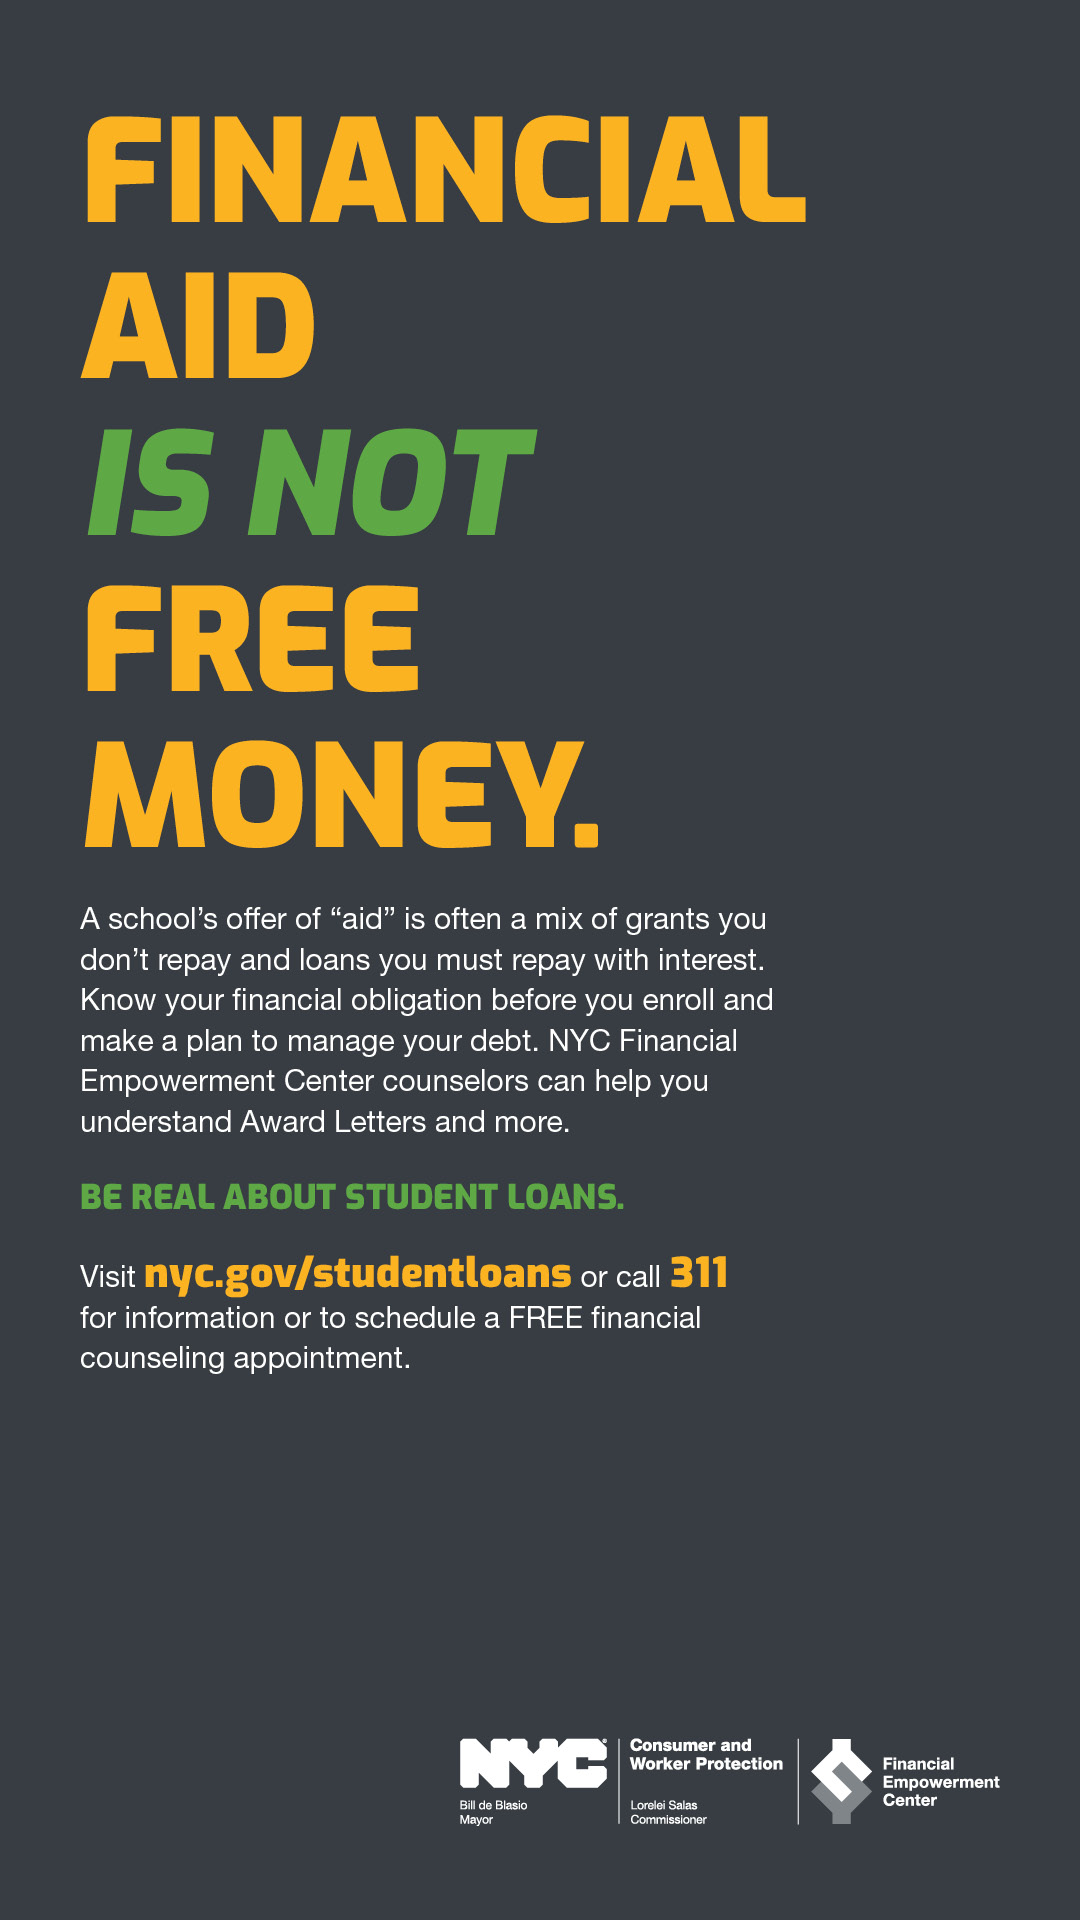 Ad with text FINANCIAL AID IS NOT FREE MONEY